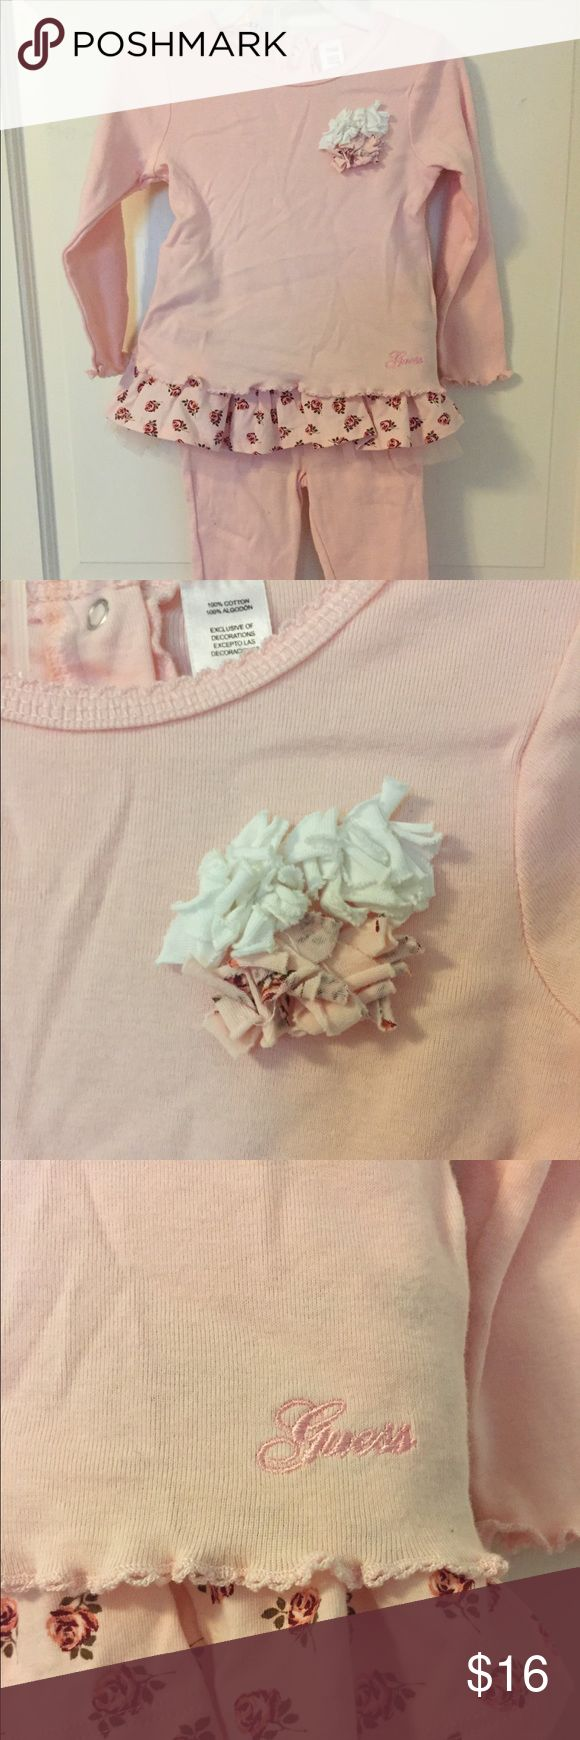 Guess Pink Two Piece Casual Outfit Soft pink cotton two piece long sleeve and pant outfit with coordinating floral ruffle skirt accent. No stains or rips. EUC. Worn only once or twice. Guess Matching Sets